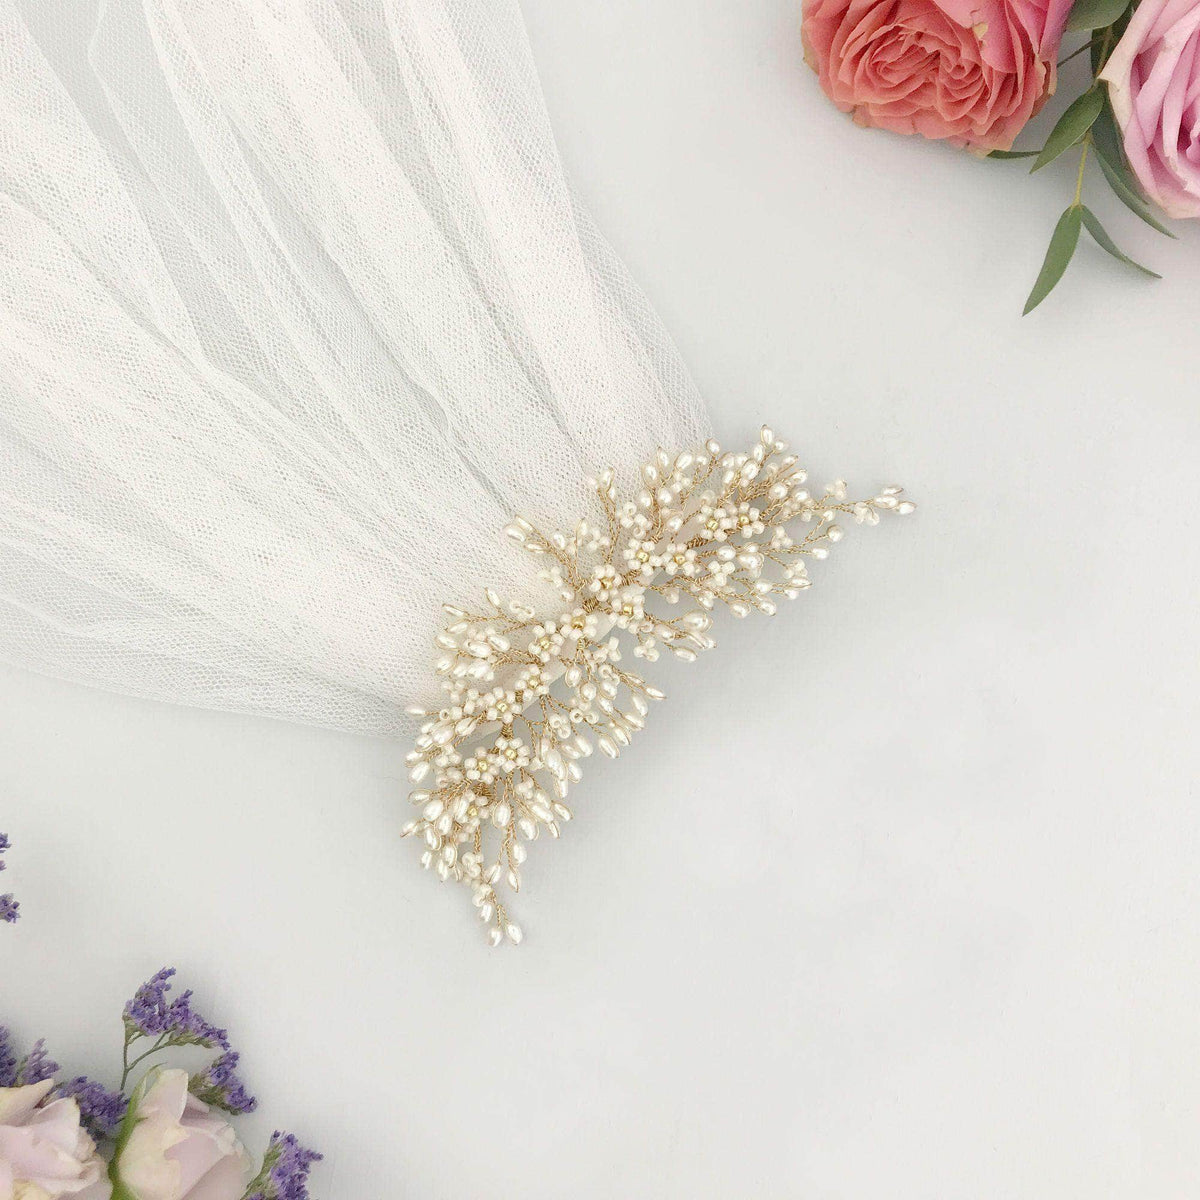 Full floral freshwater pearl hair centrepiece on gold plated wire